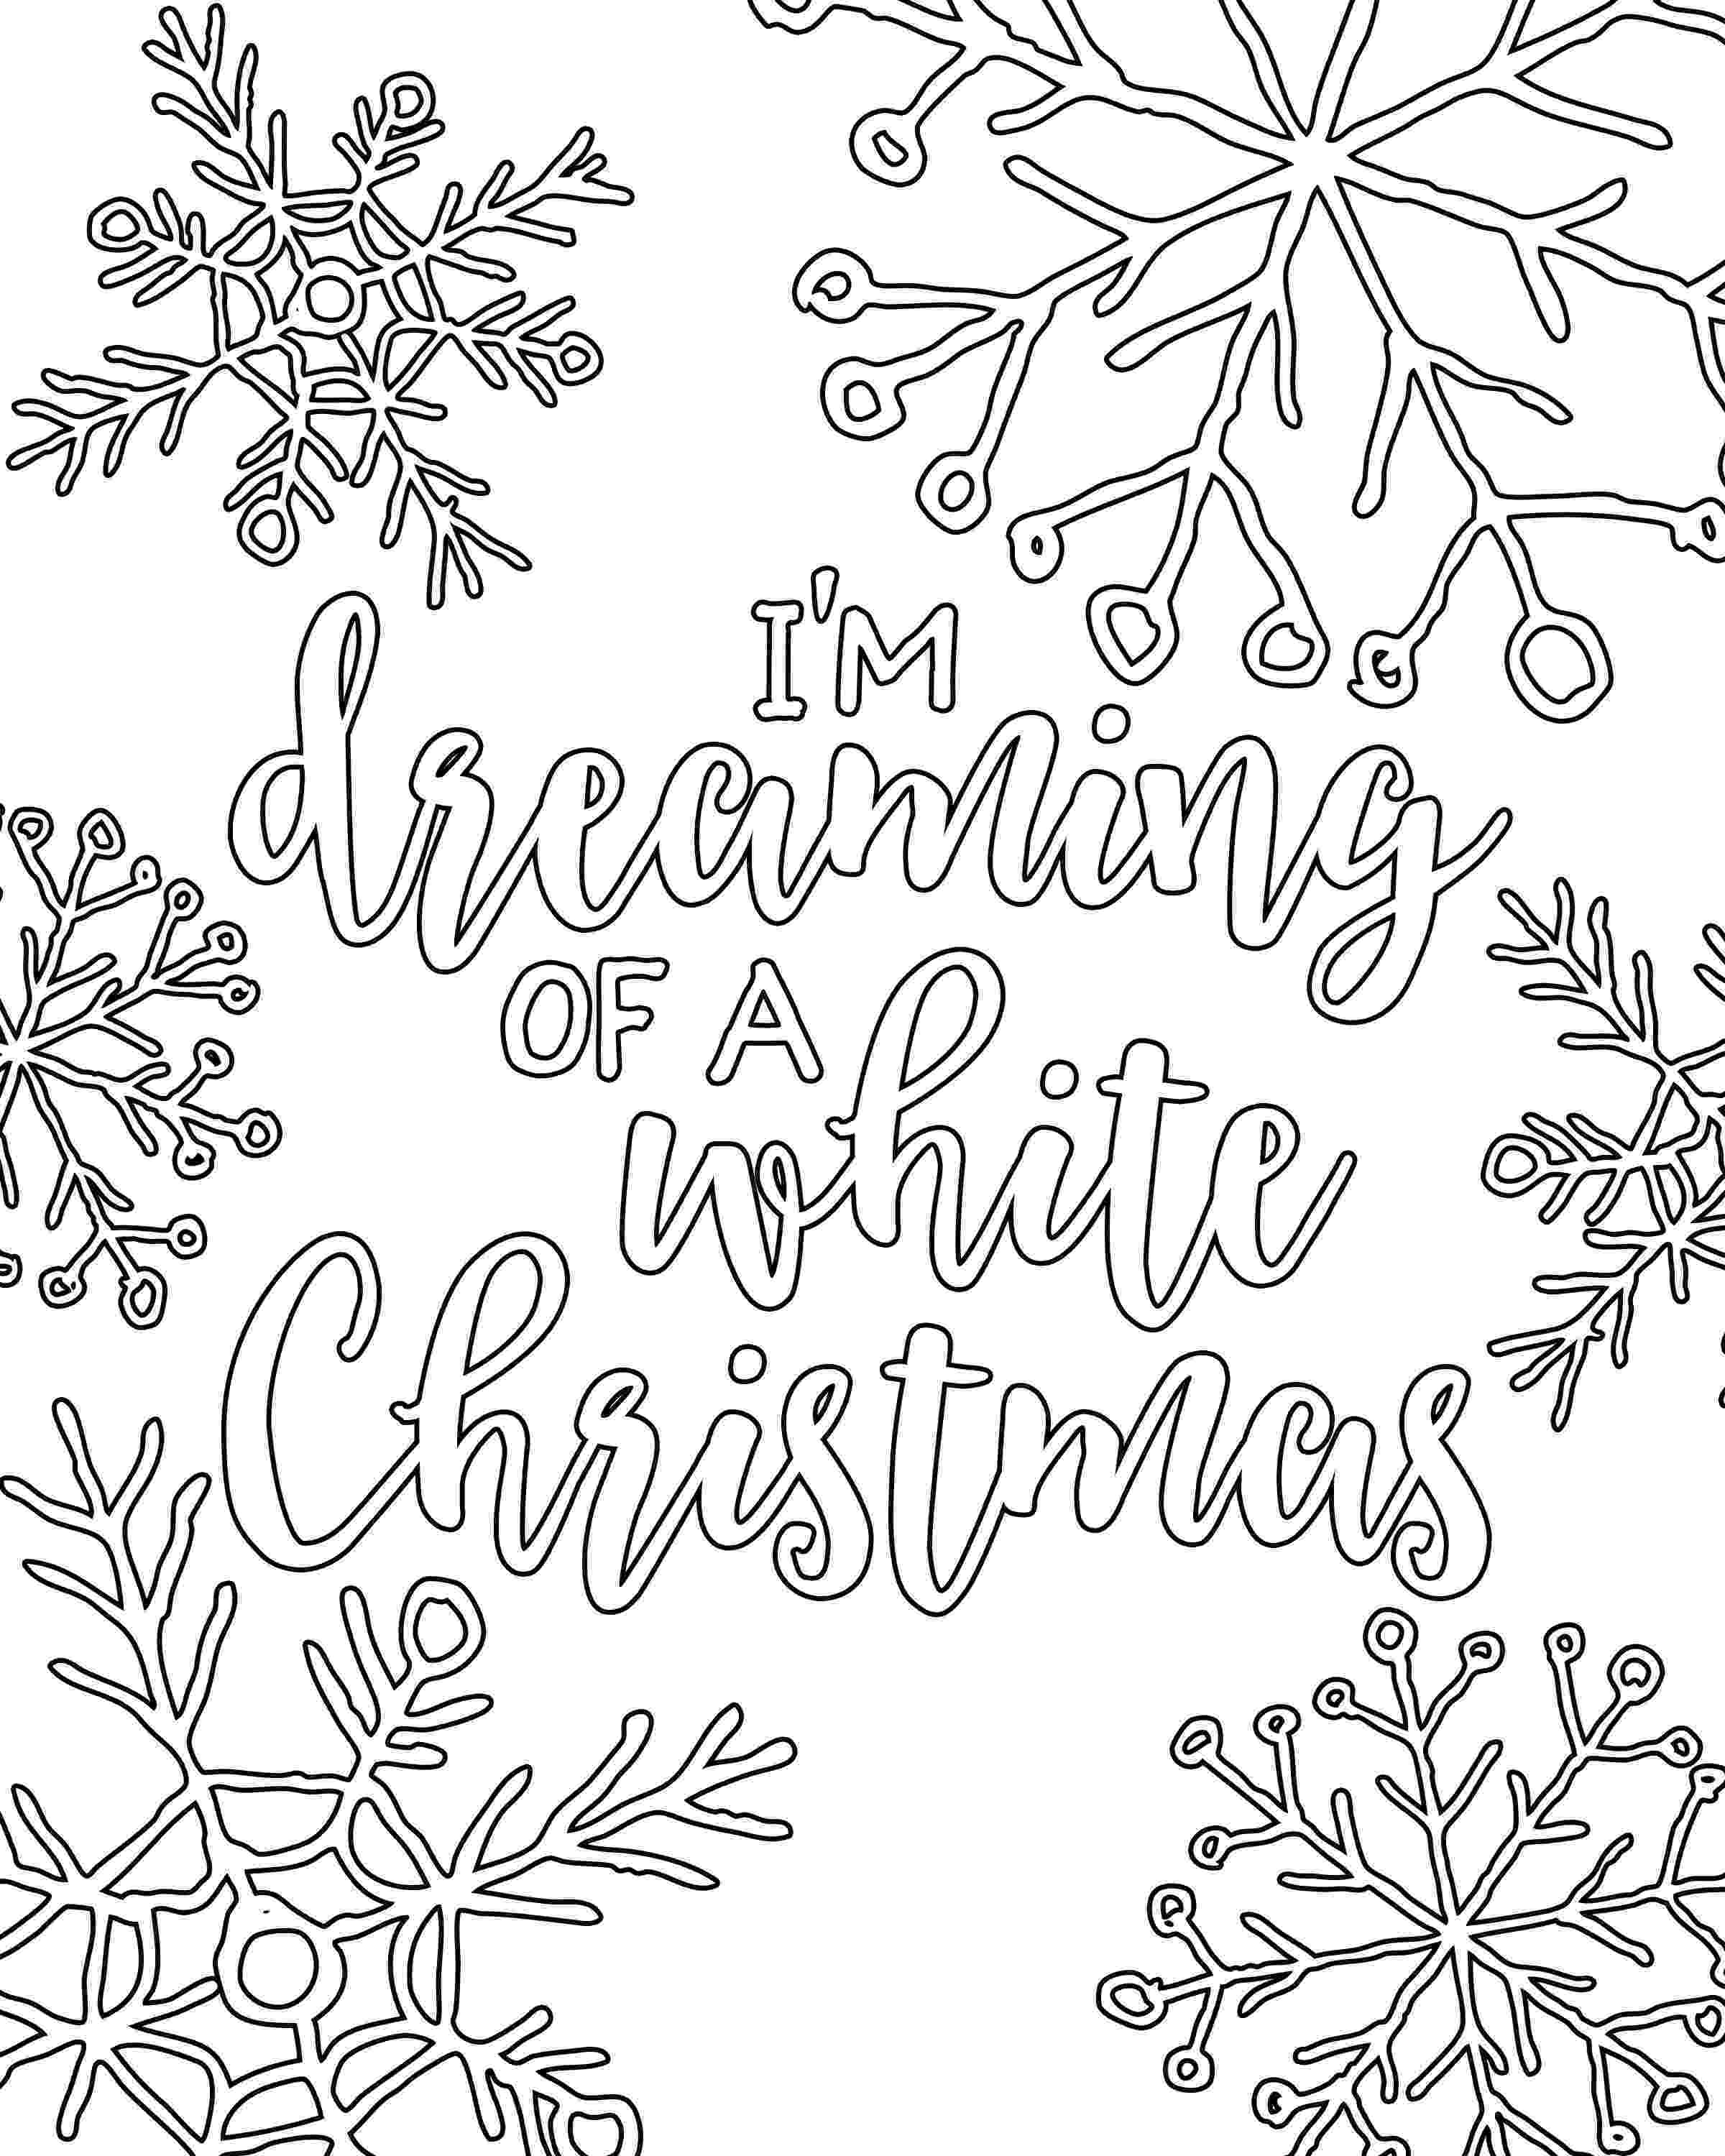 christmas presents coloring pages mickey mouse christmas coloring pages best coloring christmas presents coloring pages